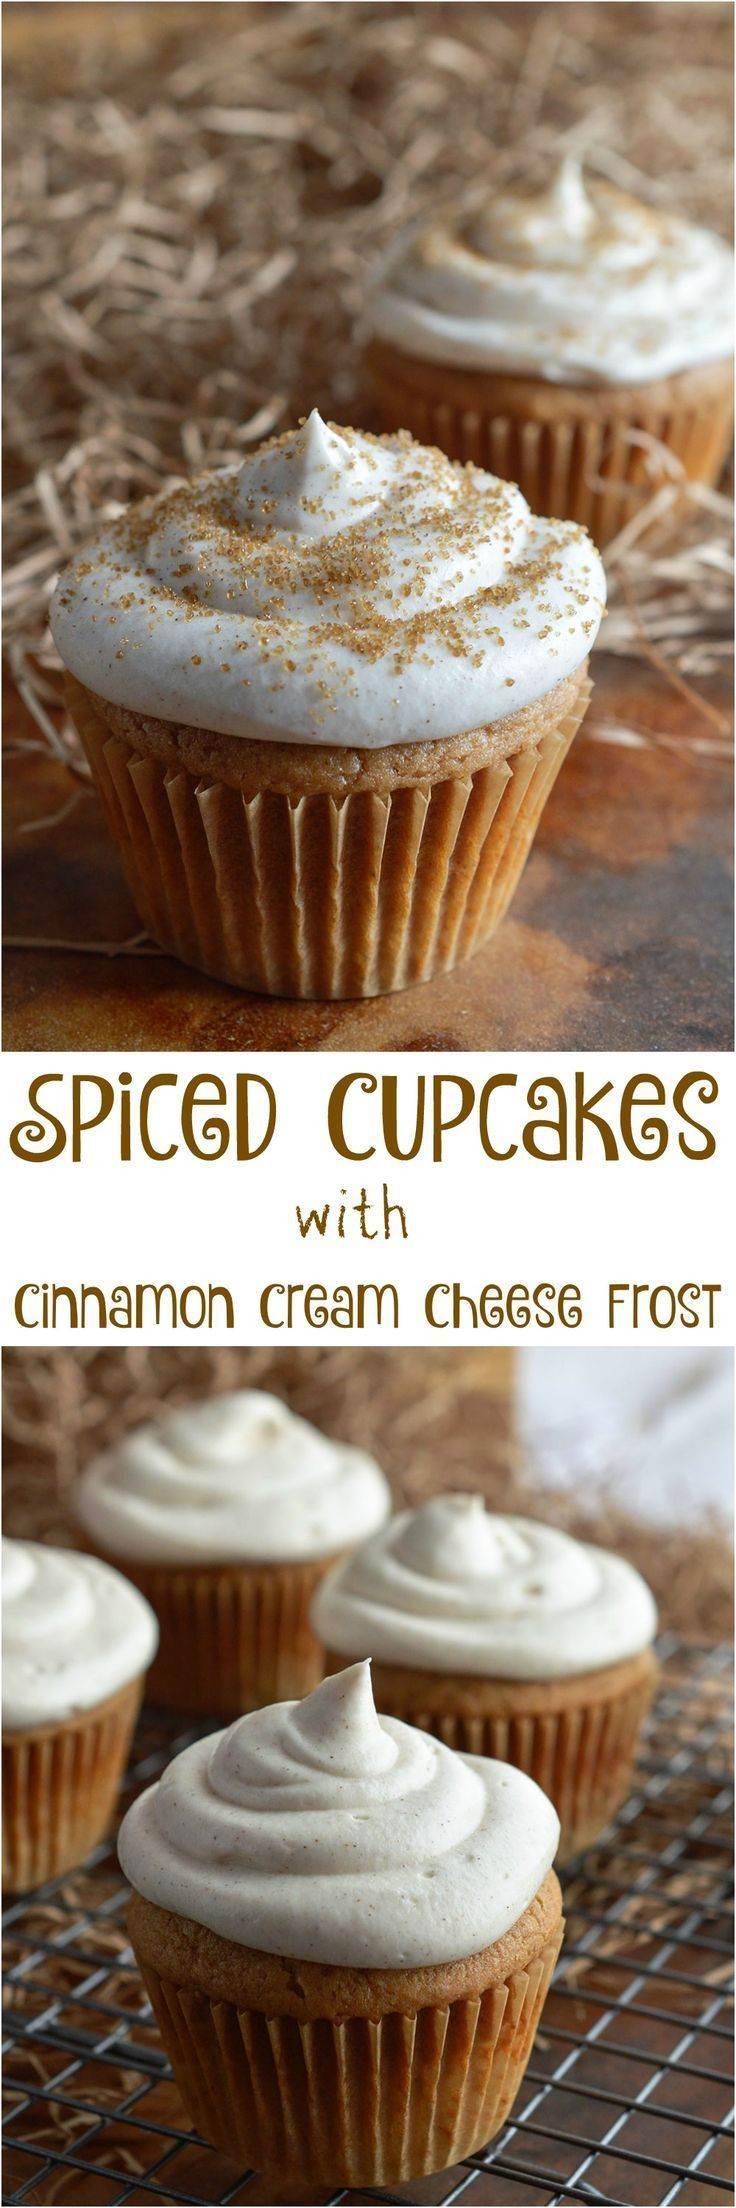 25 Fabulous Autumn Fall Cupcakes  25 best ideas about Thanksgiving Cupcakes on Pinterest